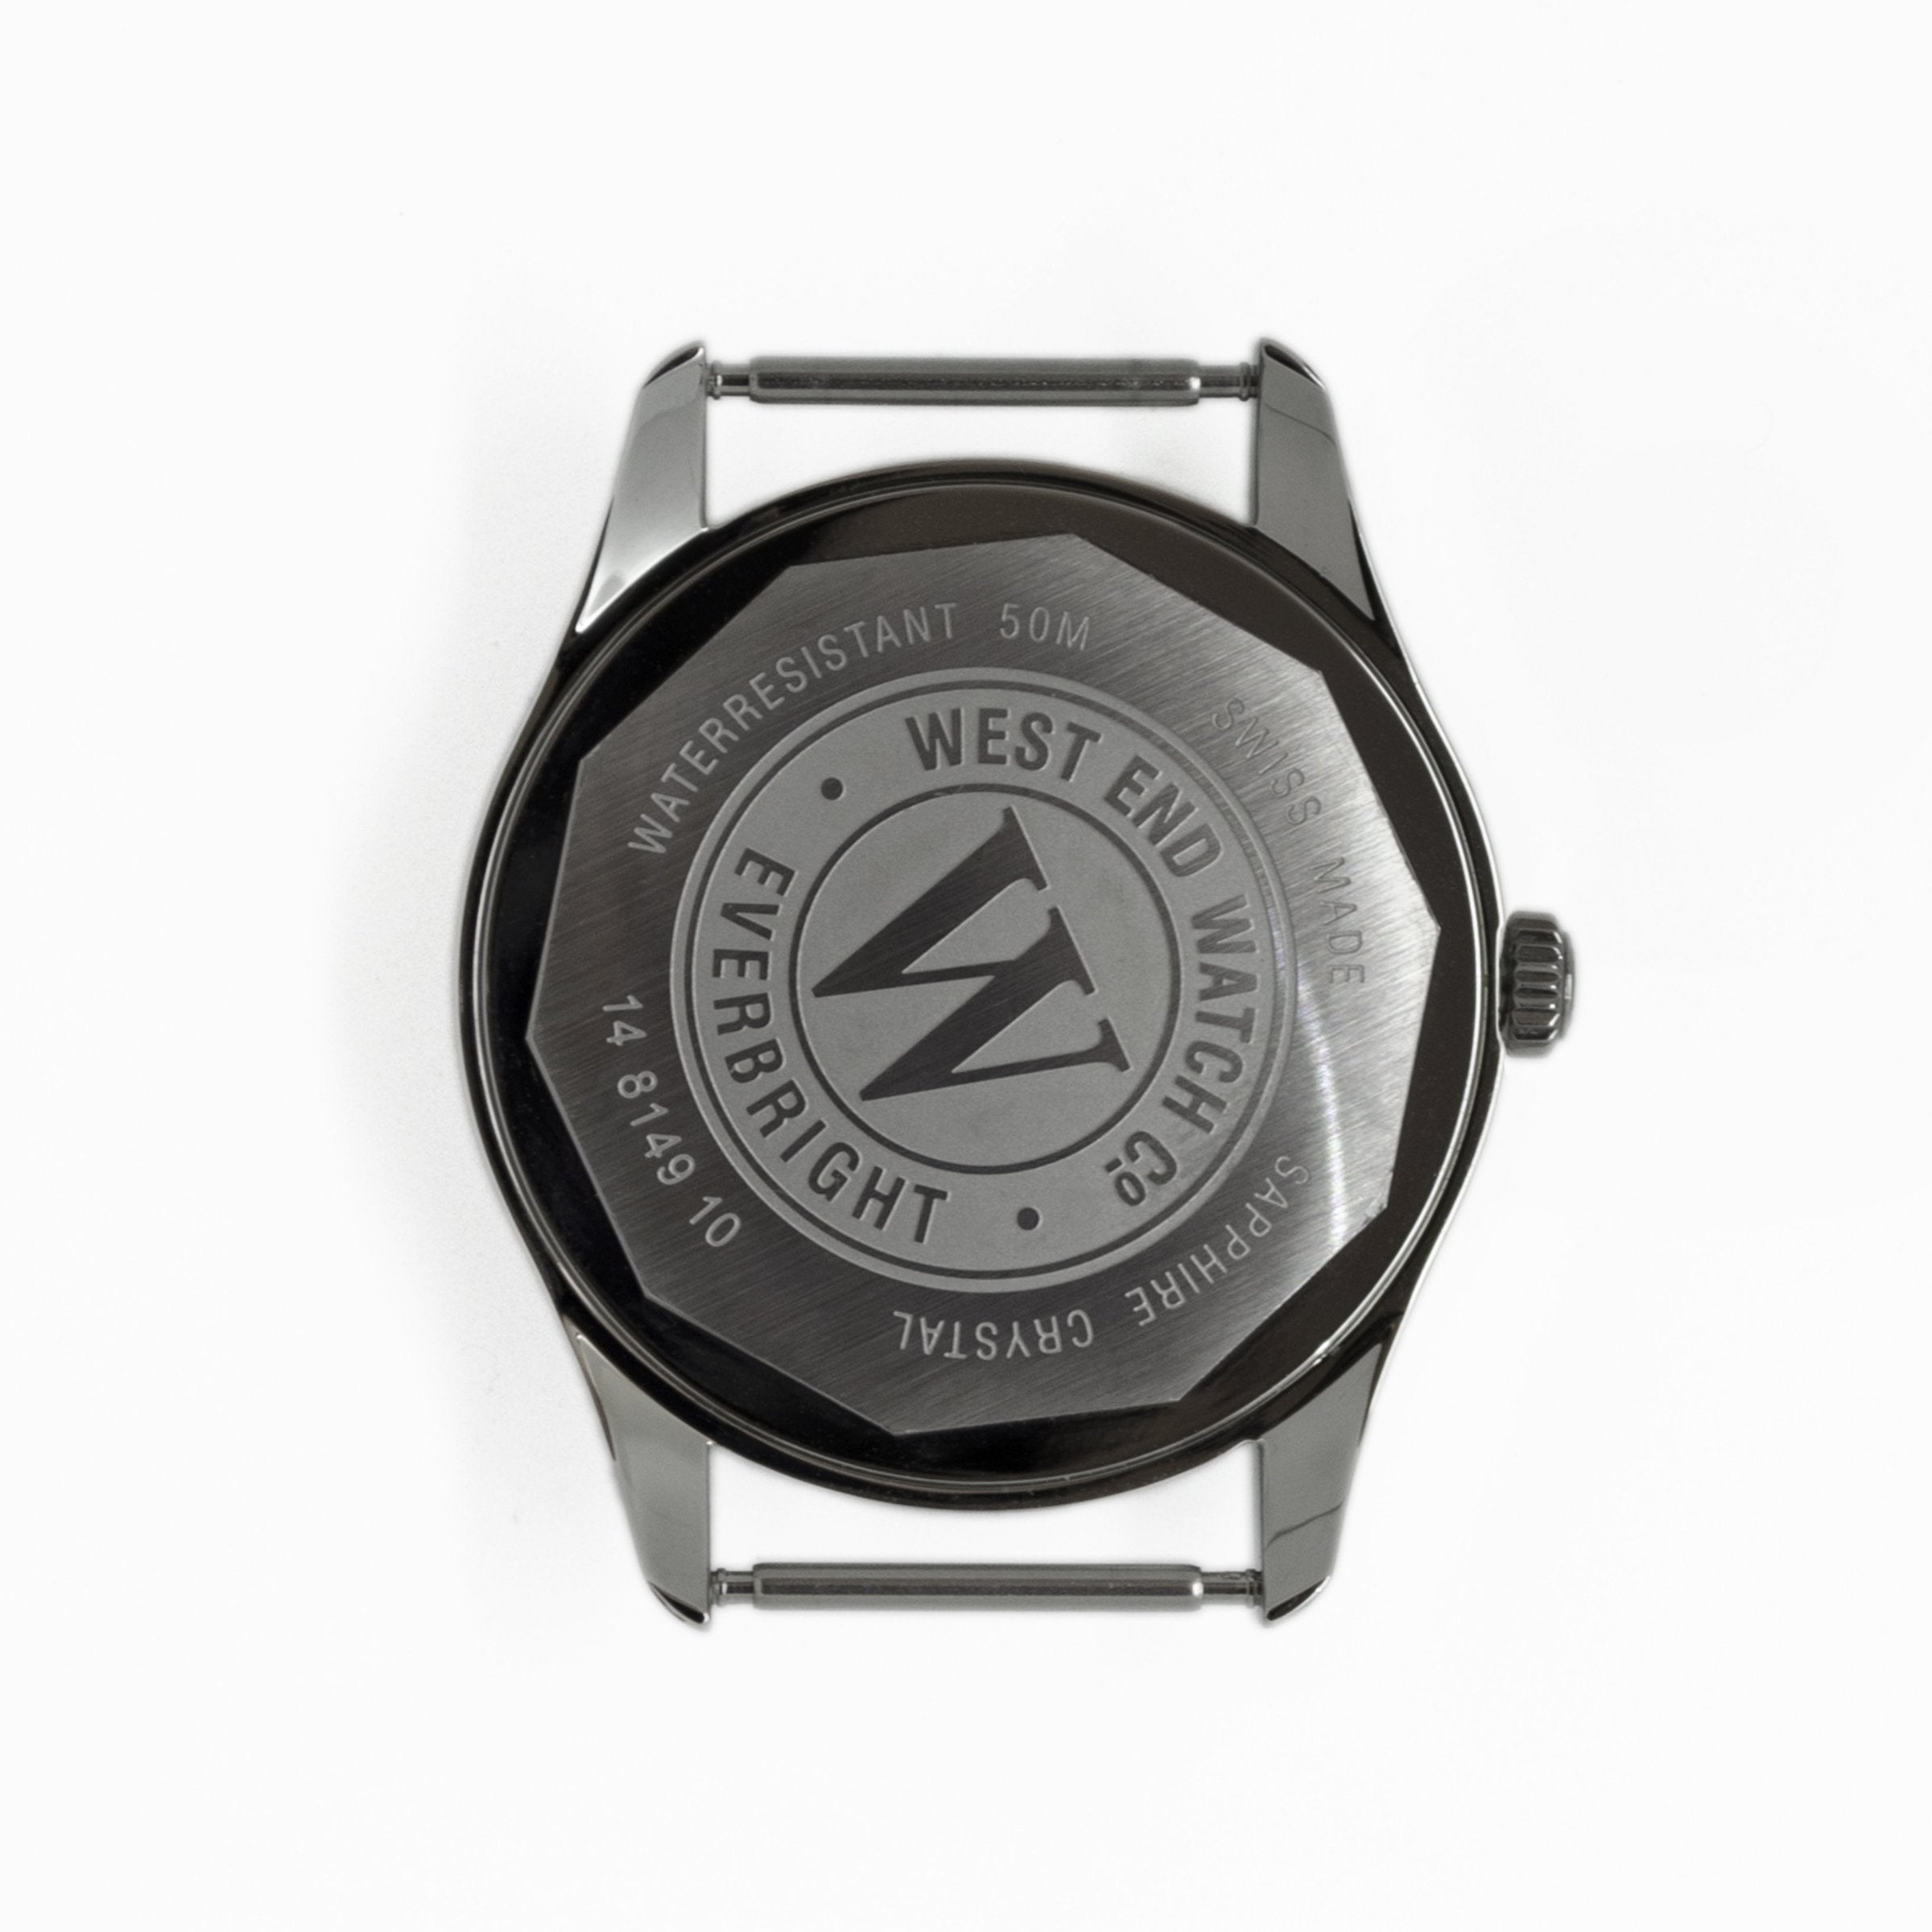 West End Watch Co. Sowar Prima - Black Dial